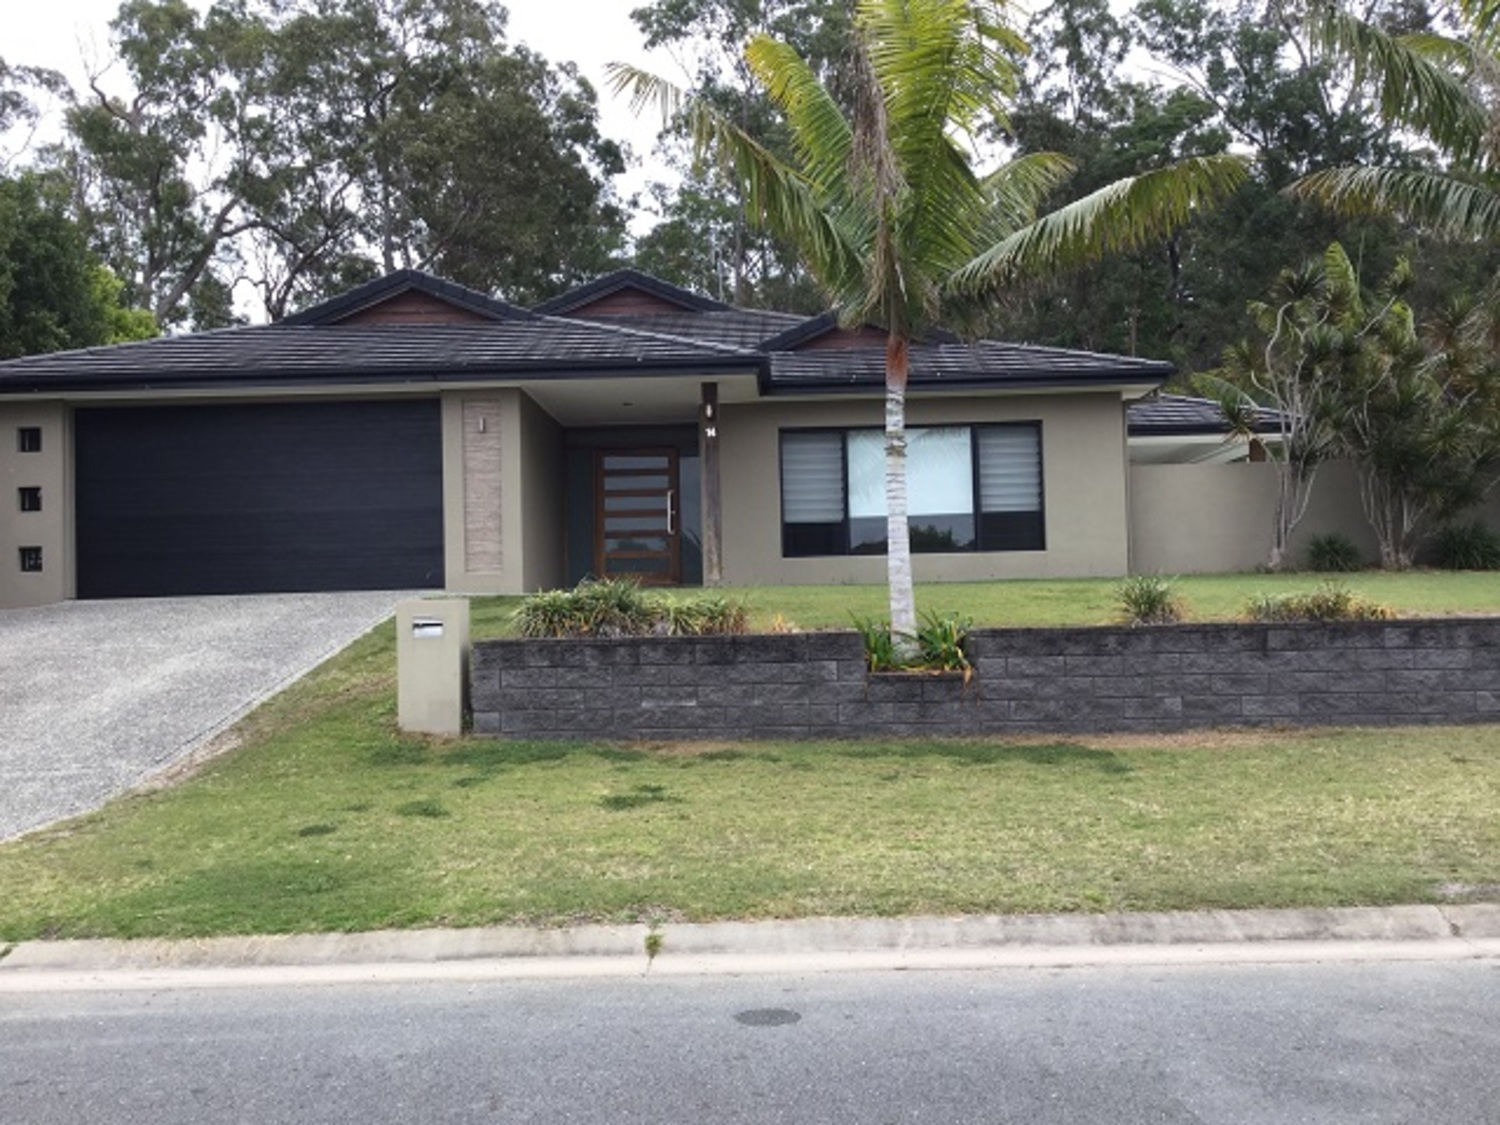 STUNNING   EXECUTIVE  LARGE HOME WITH  IN-GROUND POOL 3 LIVING AREAS DUCTED AIR CON